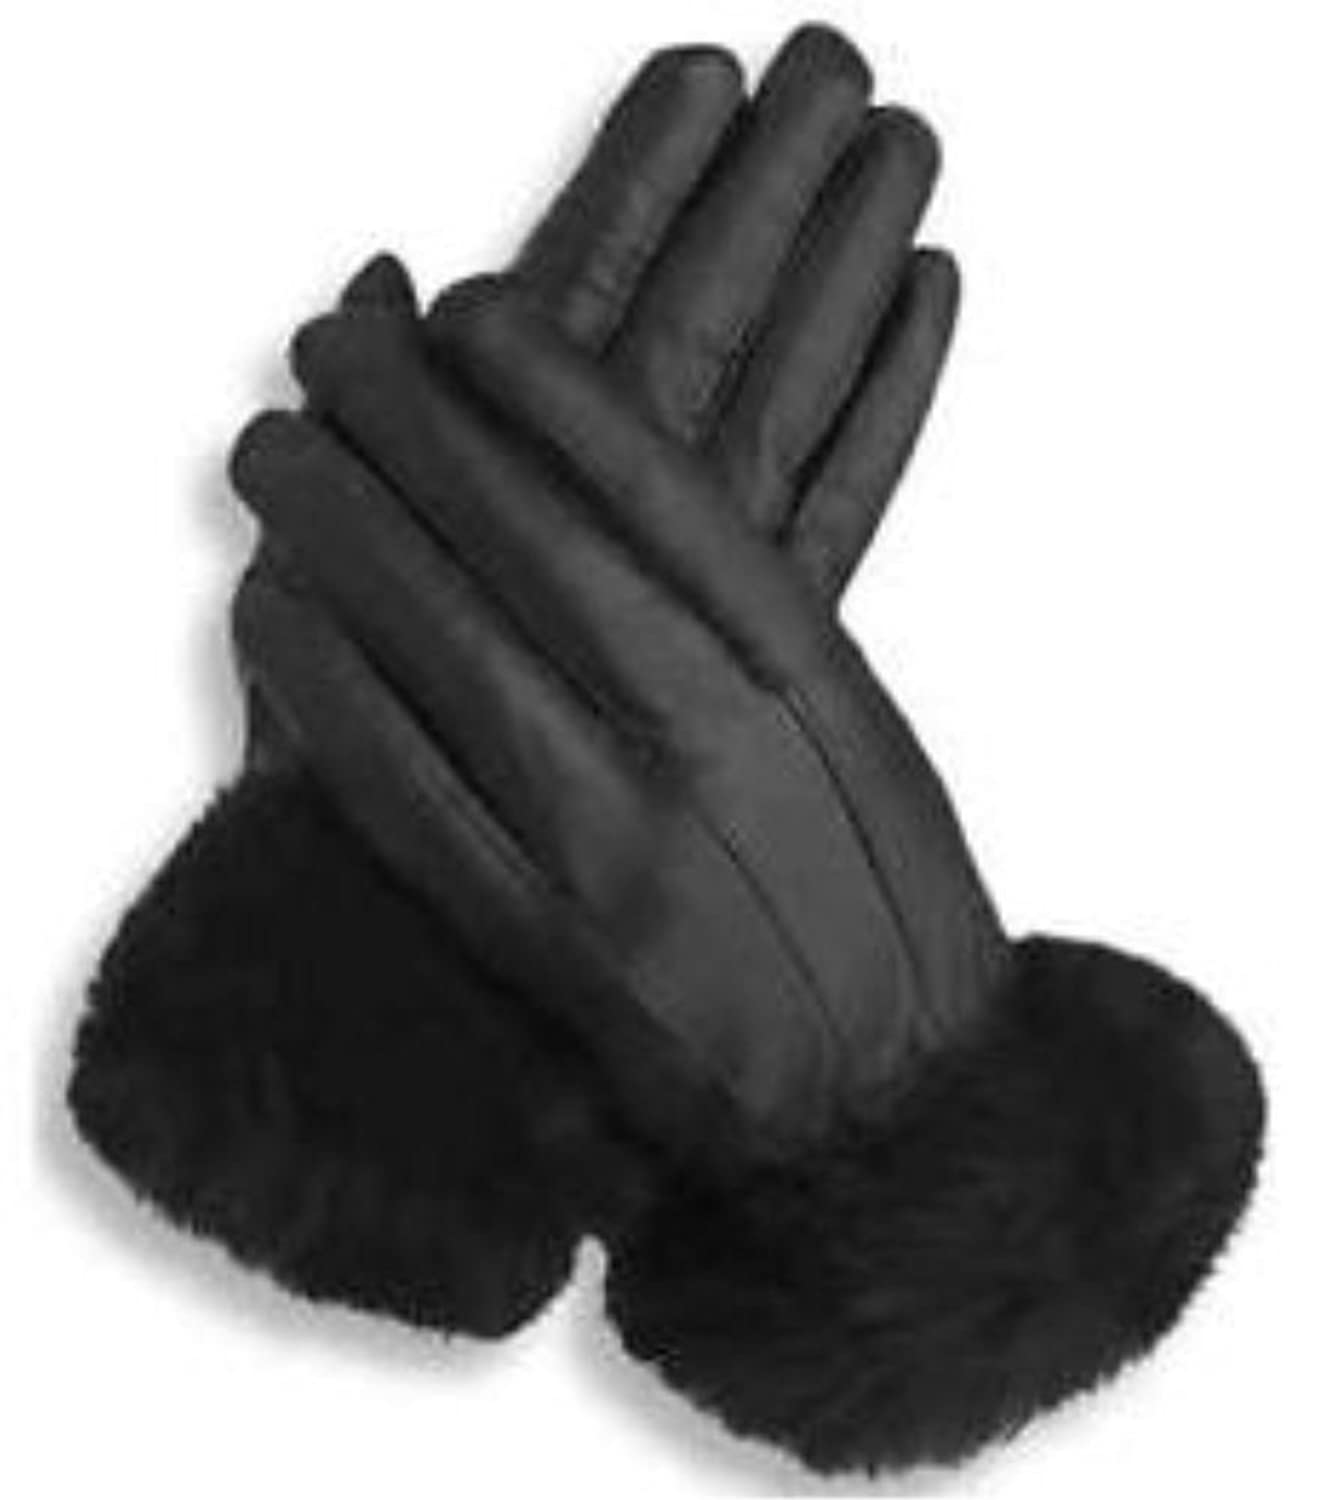 Womens black leather gloves uk - Welch Co Quality Soft Black Leather Fur Cuff Gloves